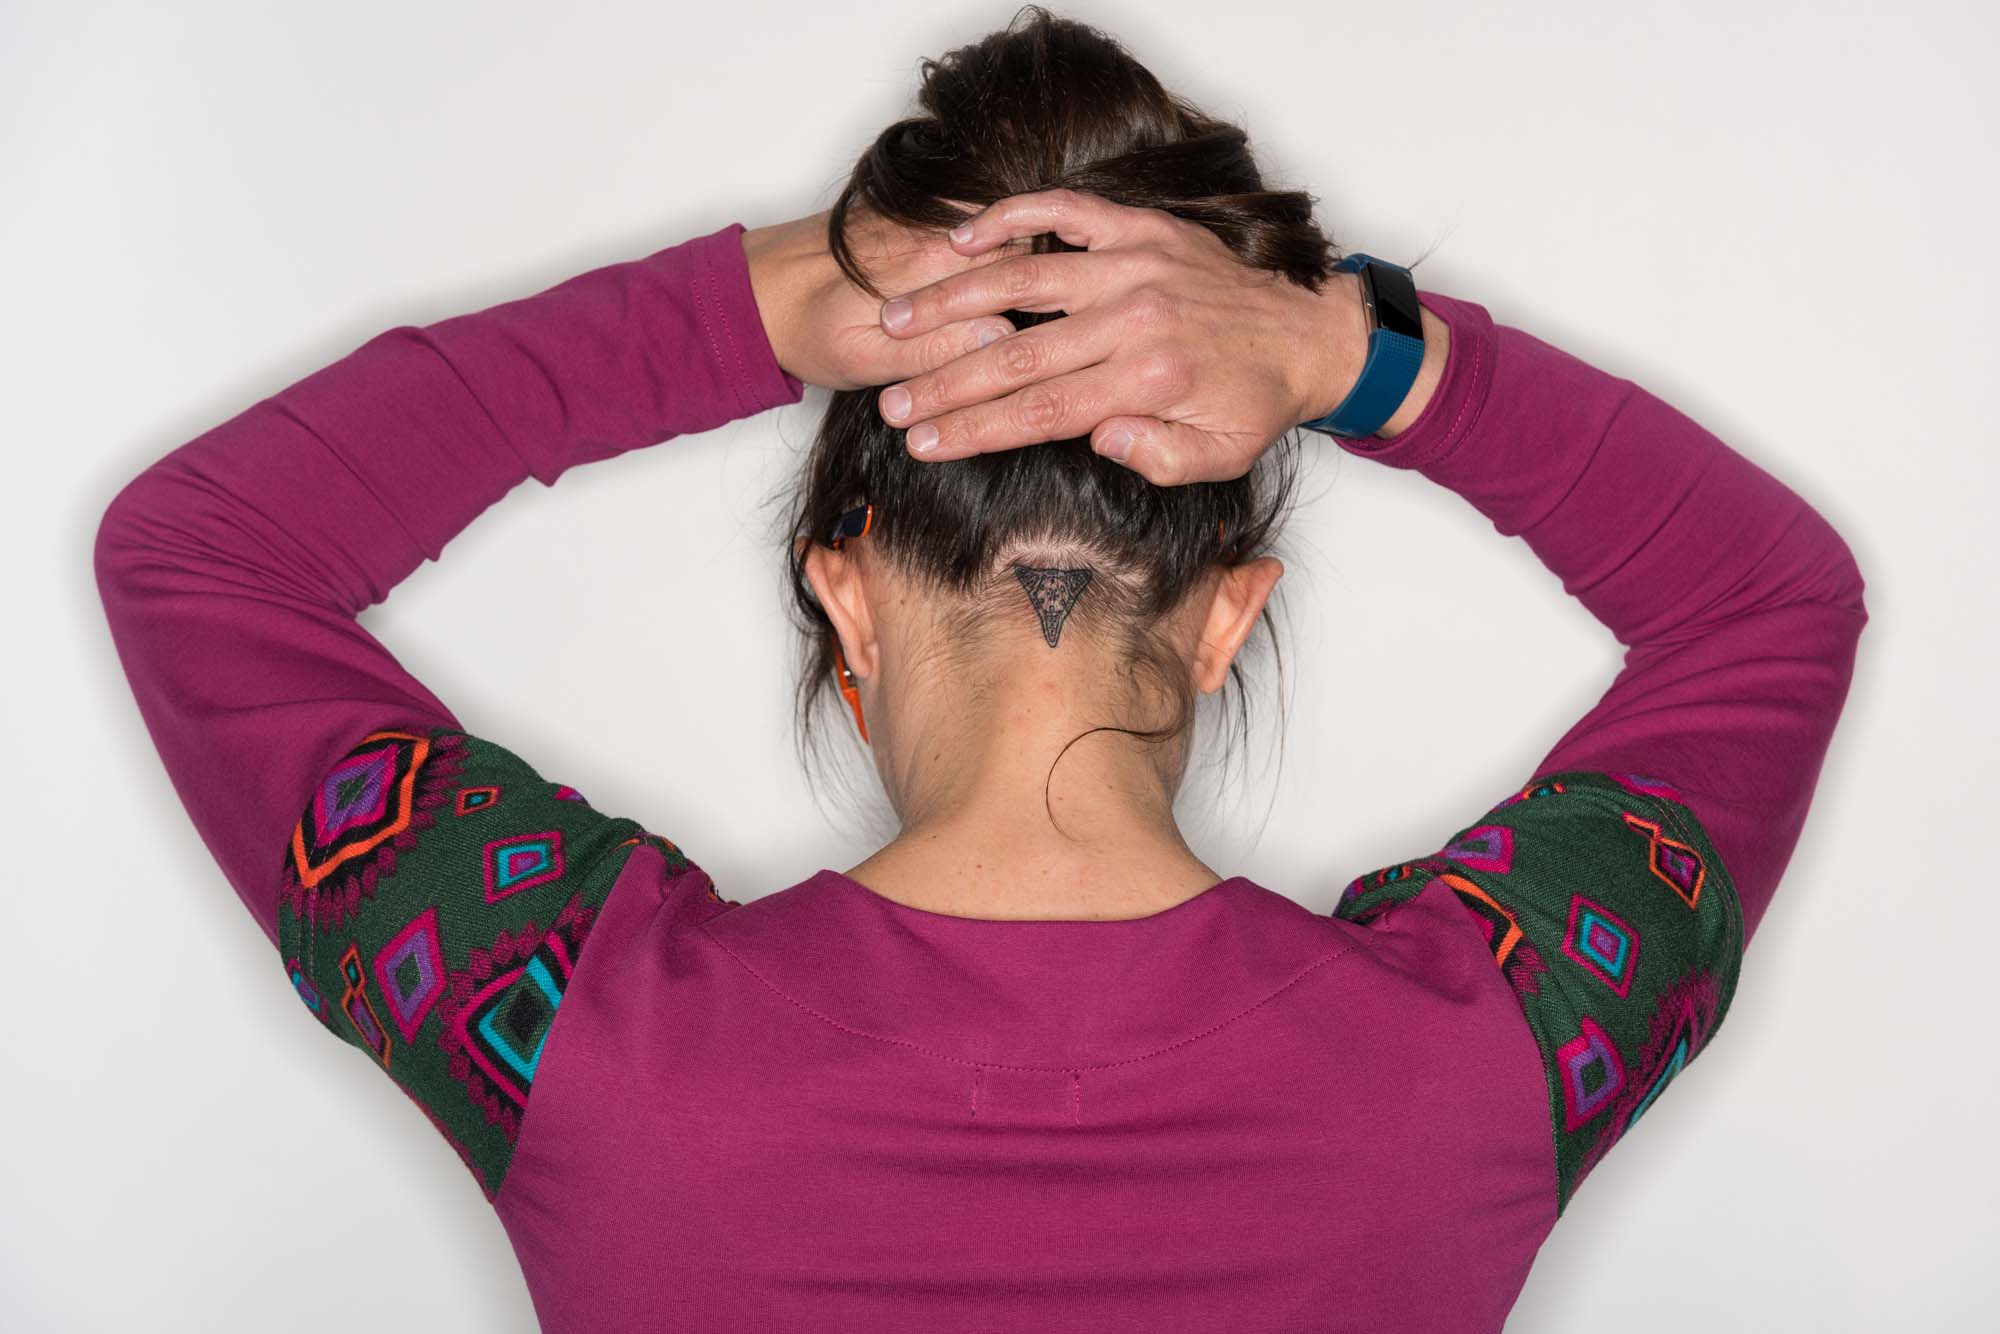 a photo of a woman raising the hair on the nape of her neck to reveal a tattoo